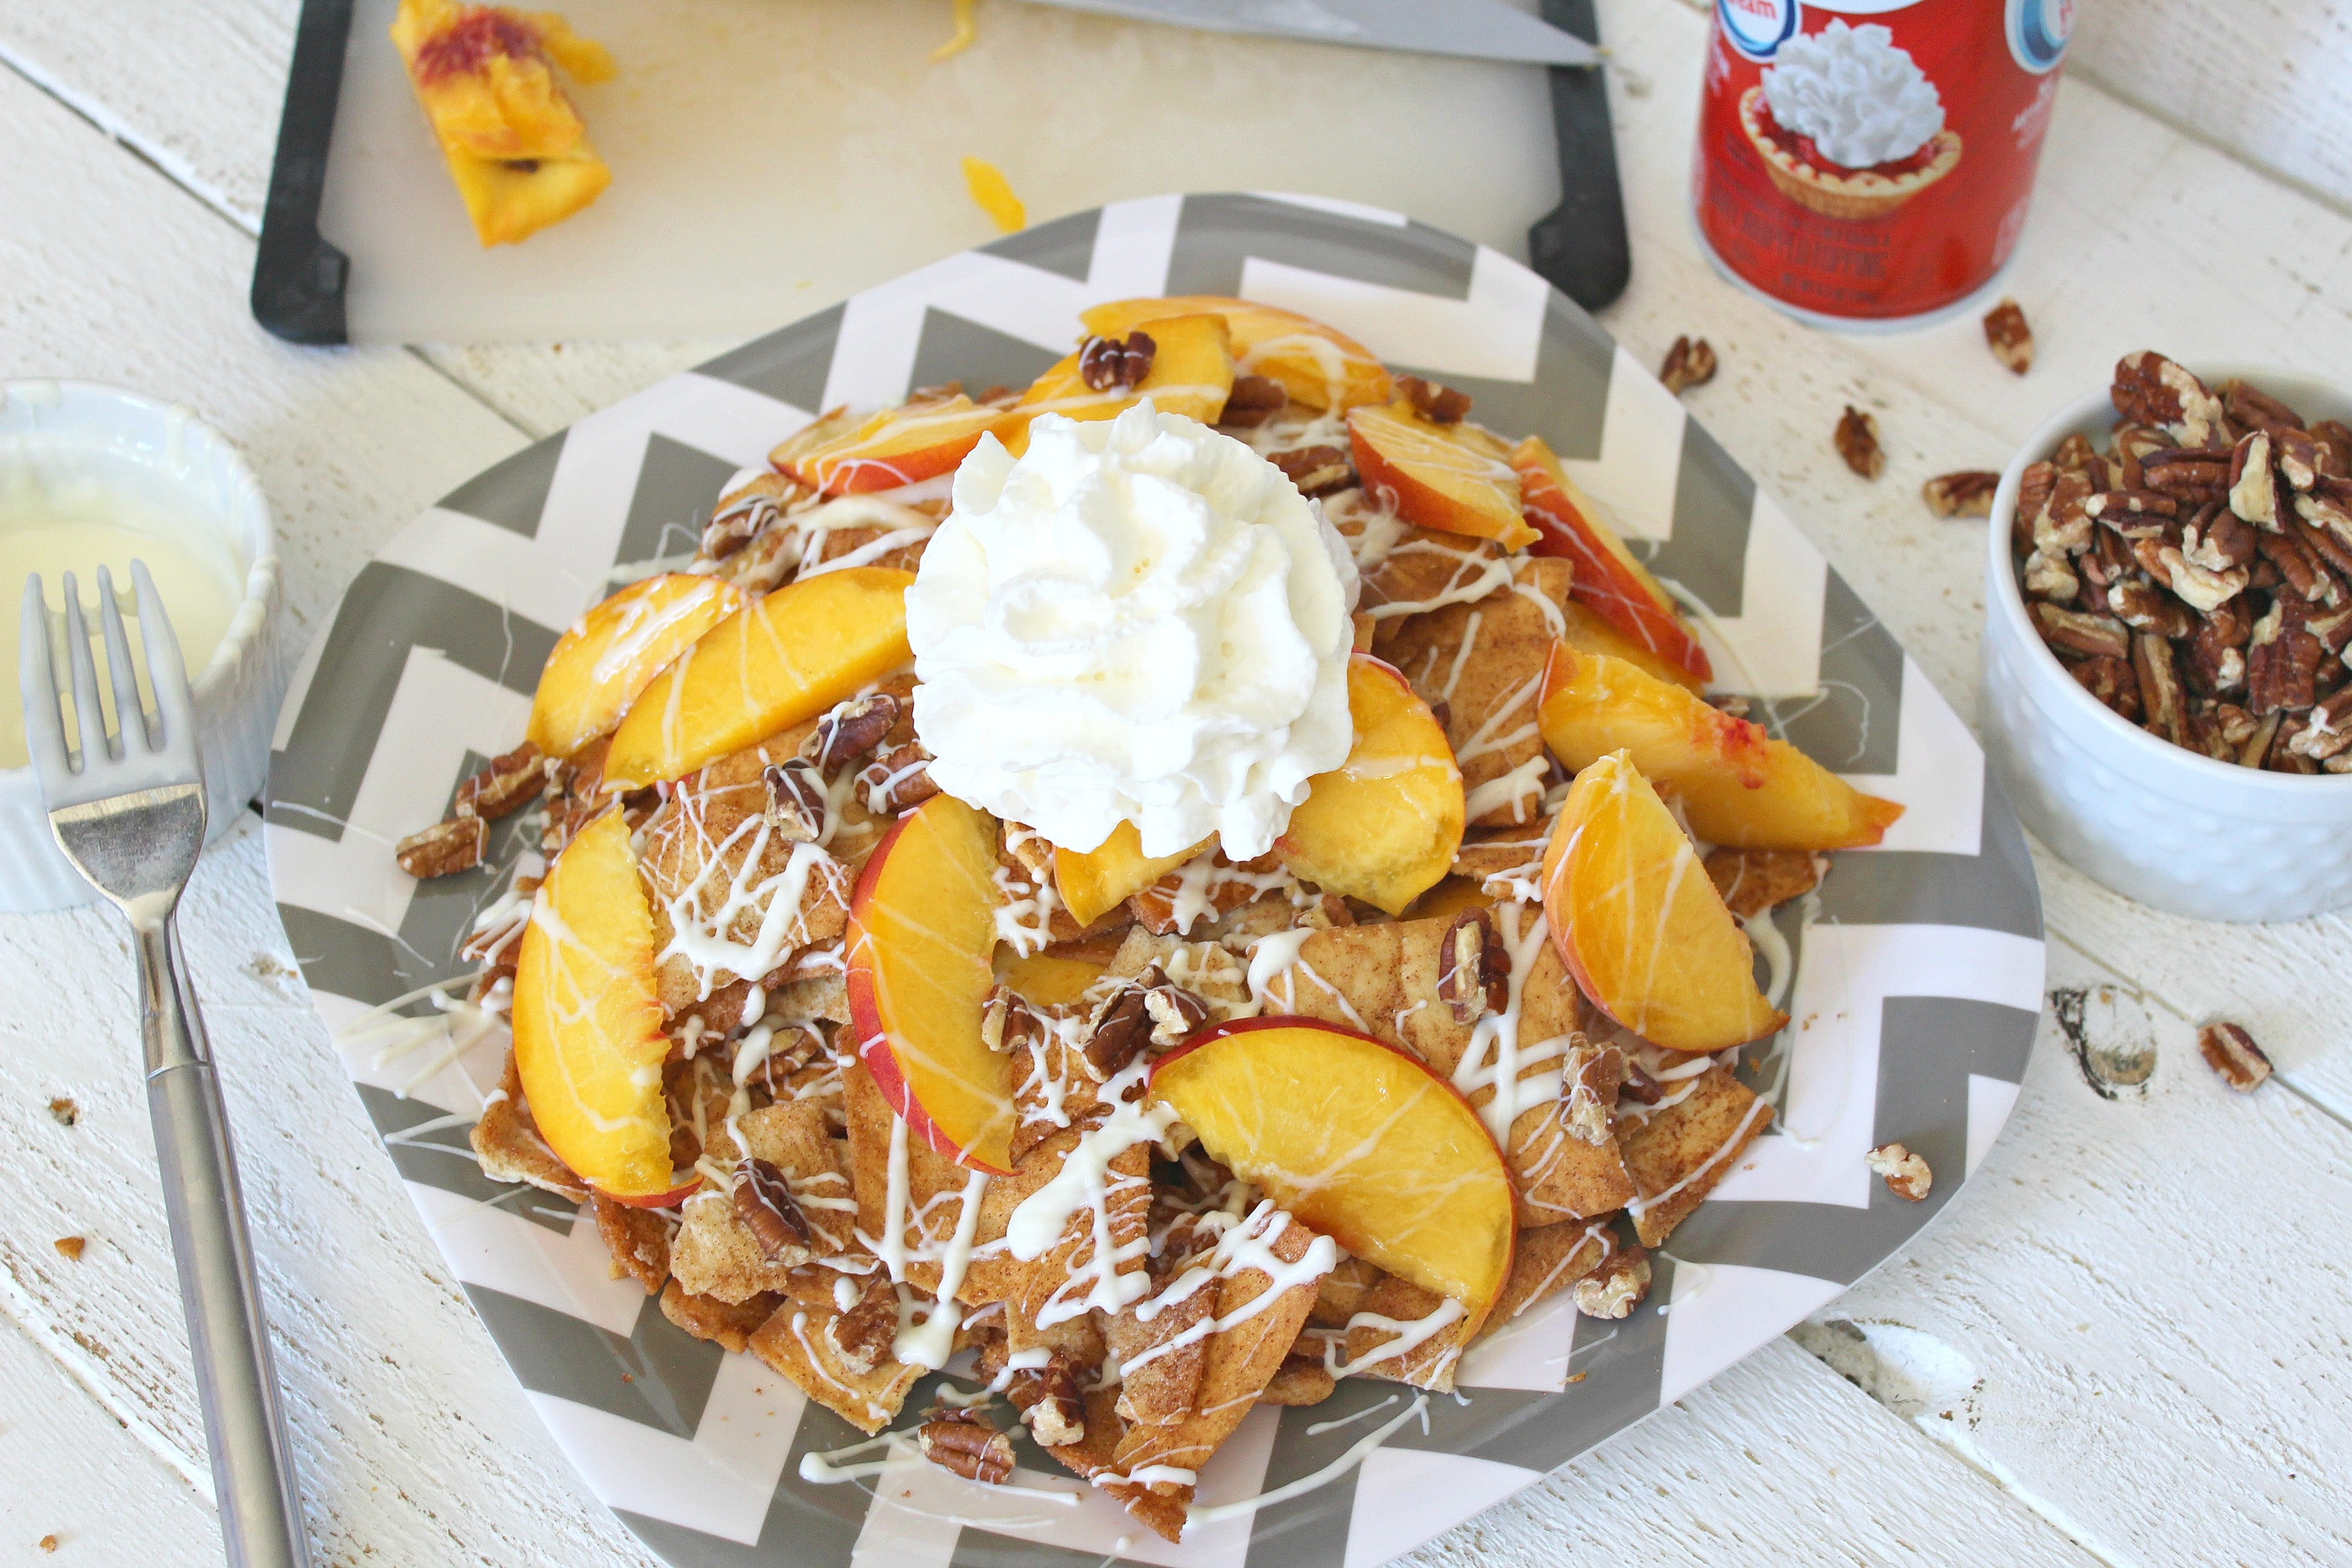 Top of the dessert nachos with whipped cream.